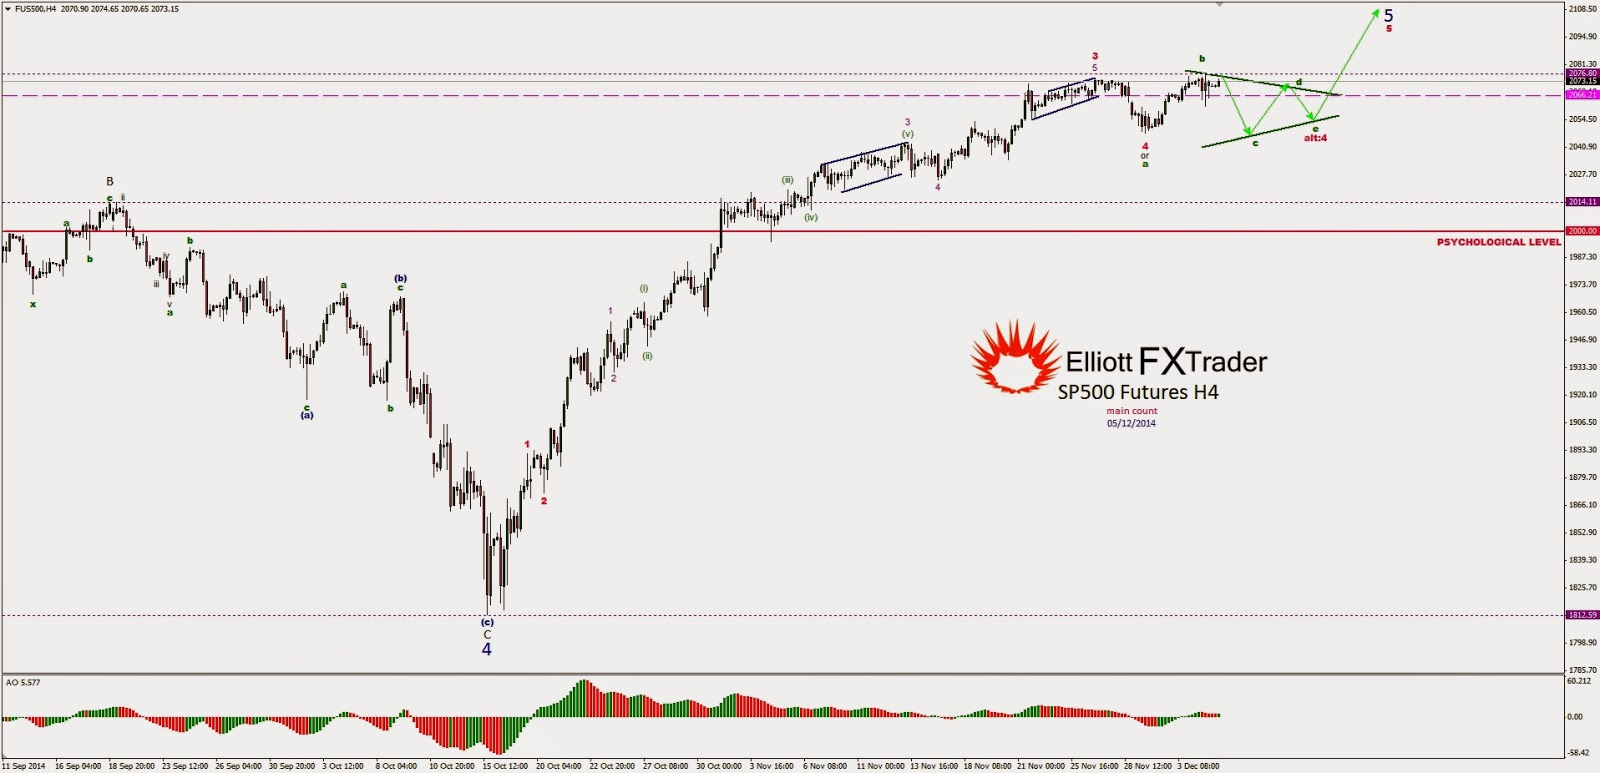 Sp500 forexpros